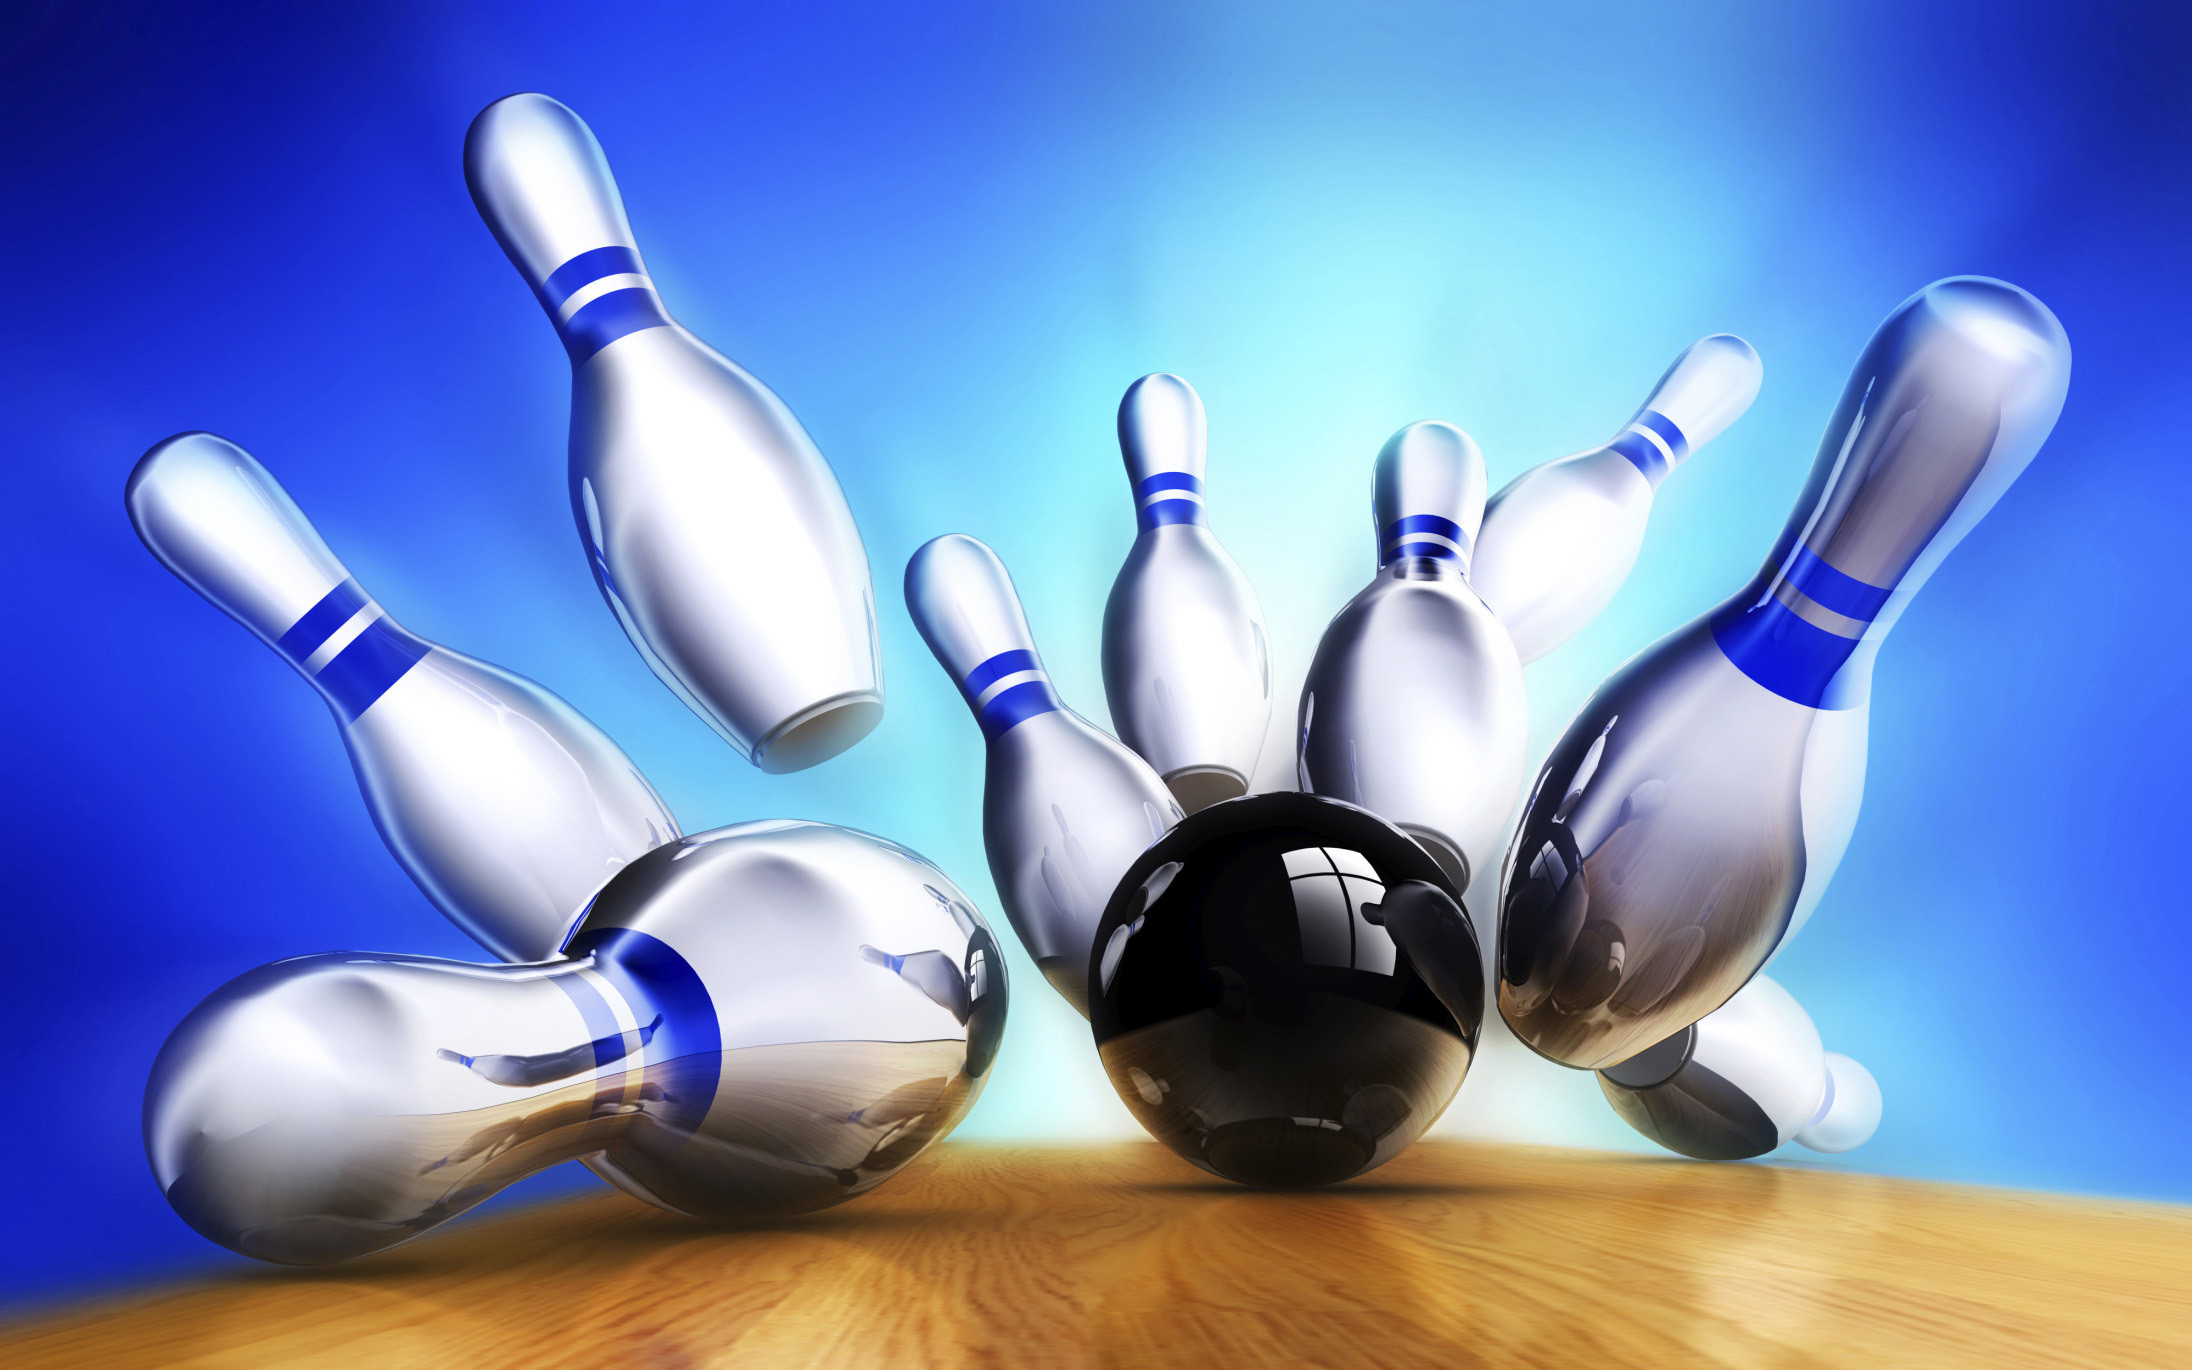 Bowling Wallpapers 61 Images Rh Getwallpapers Com Storm Wallpaper Ball